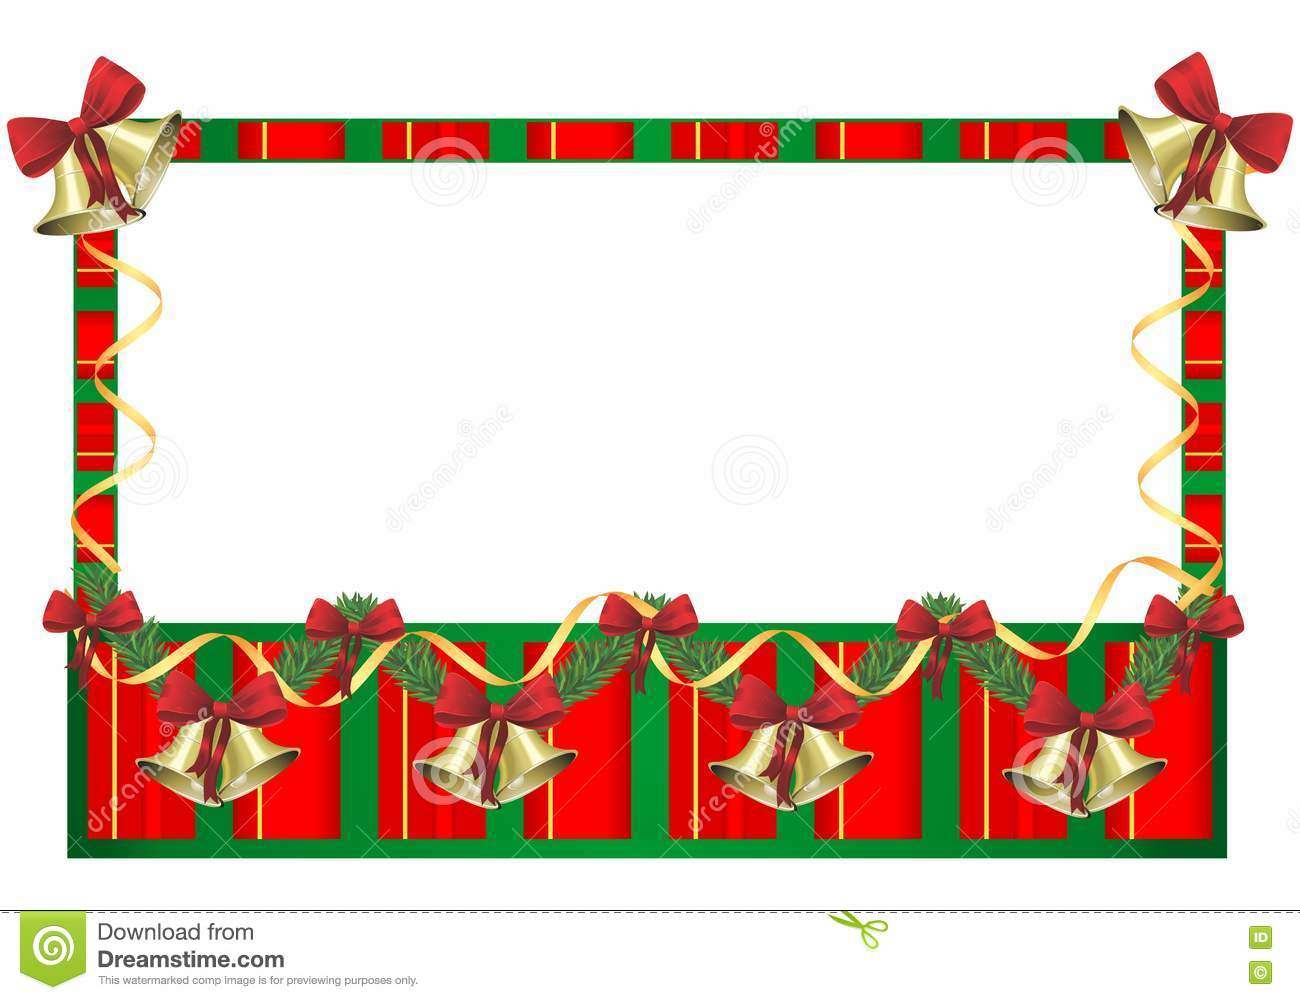 Red and Green Christmas Frames